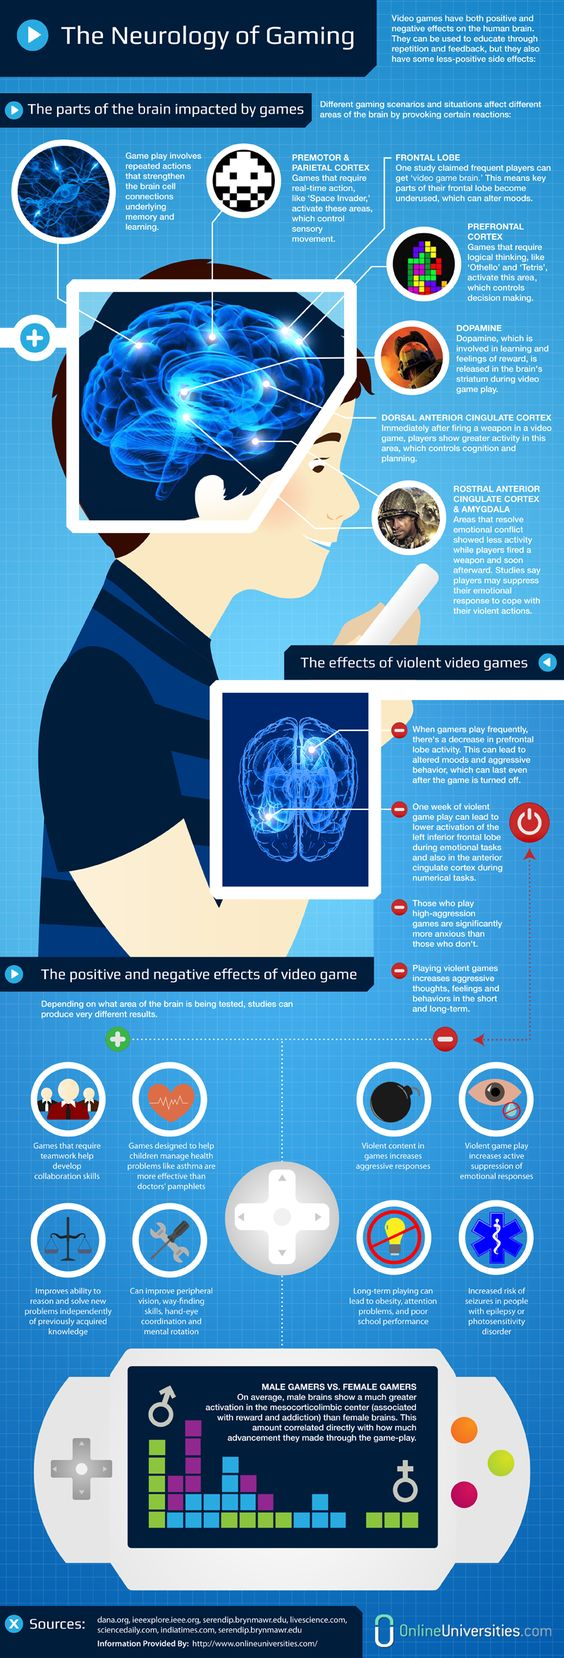 Infographic loving Online Universities have produced another cracker. This time round we're taking a look at the neurology of gaming. Does gaming mess with